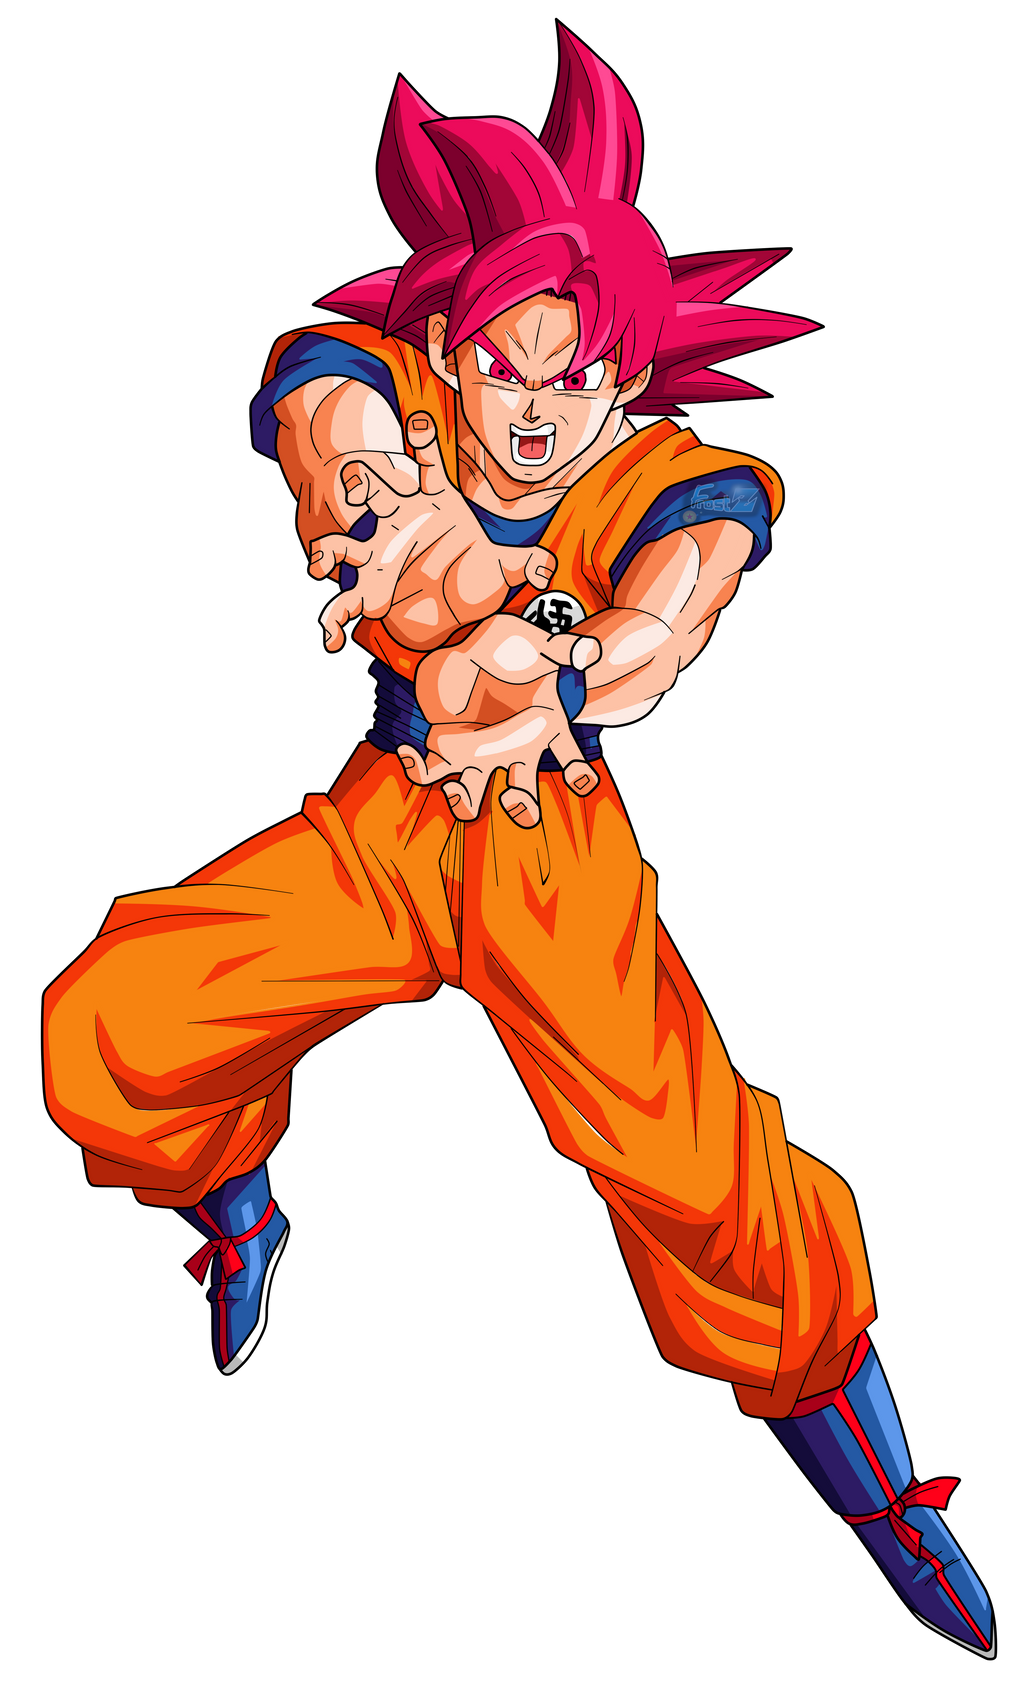 Goku Super Saiyan God Wallpapers - Wallpaper Cave |Goku Super Sayian God